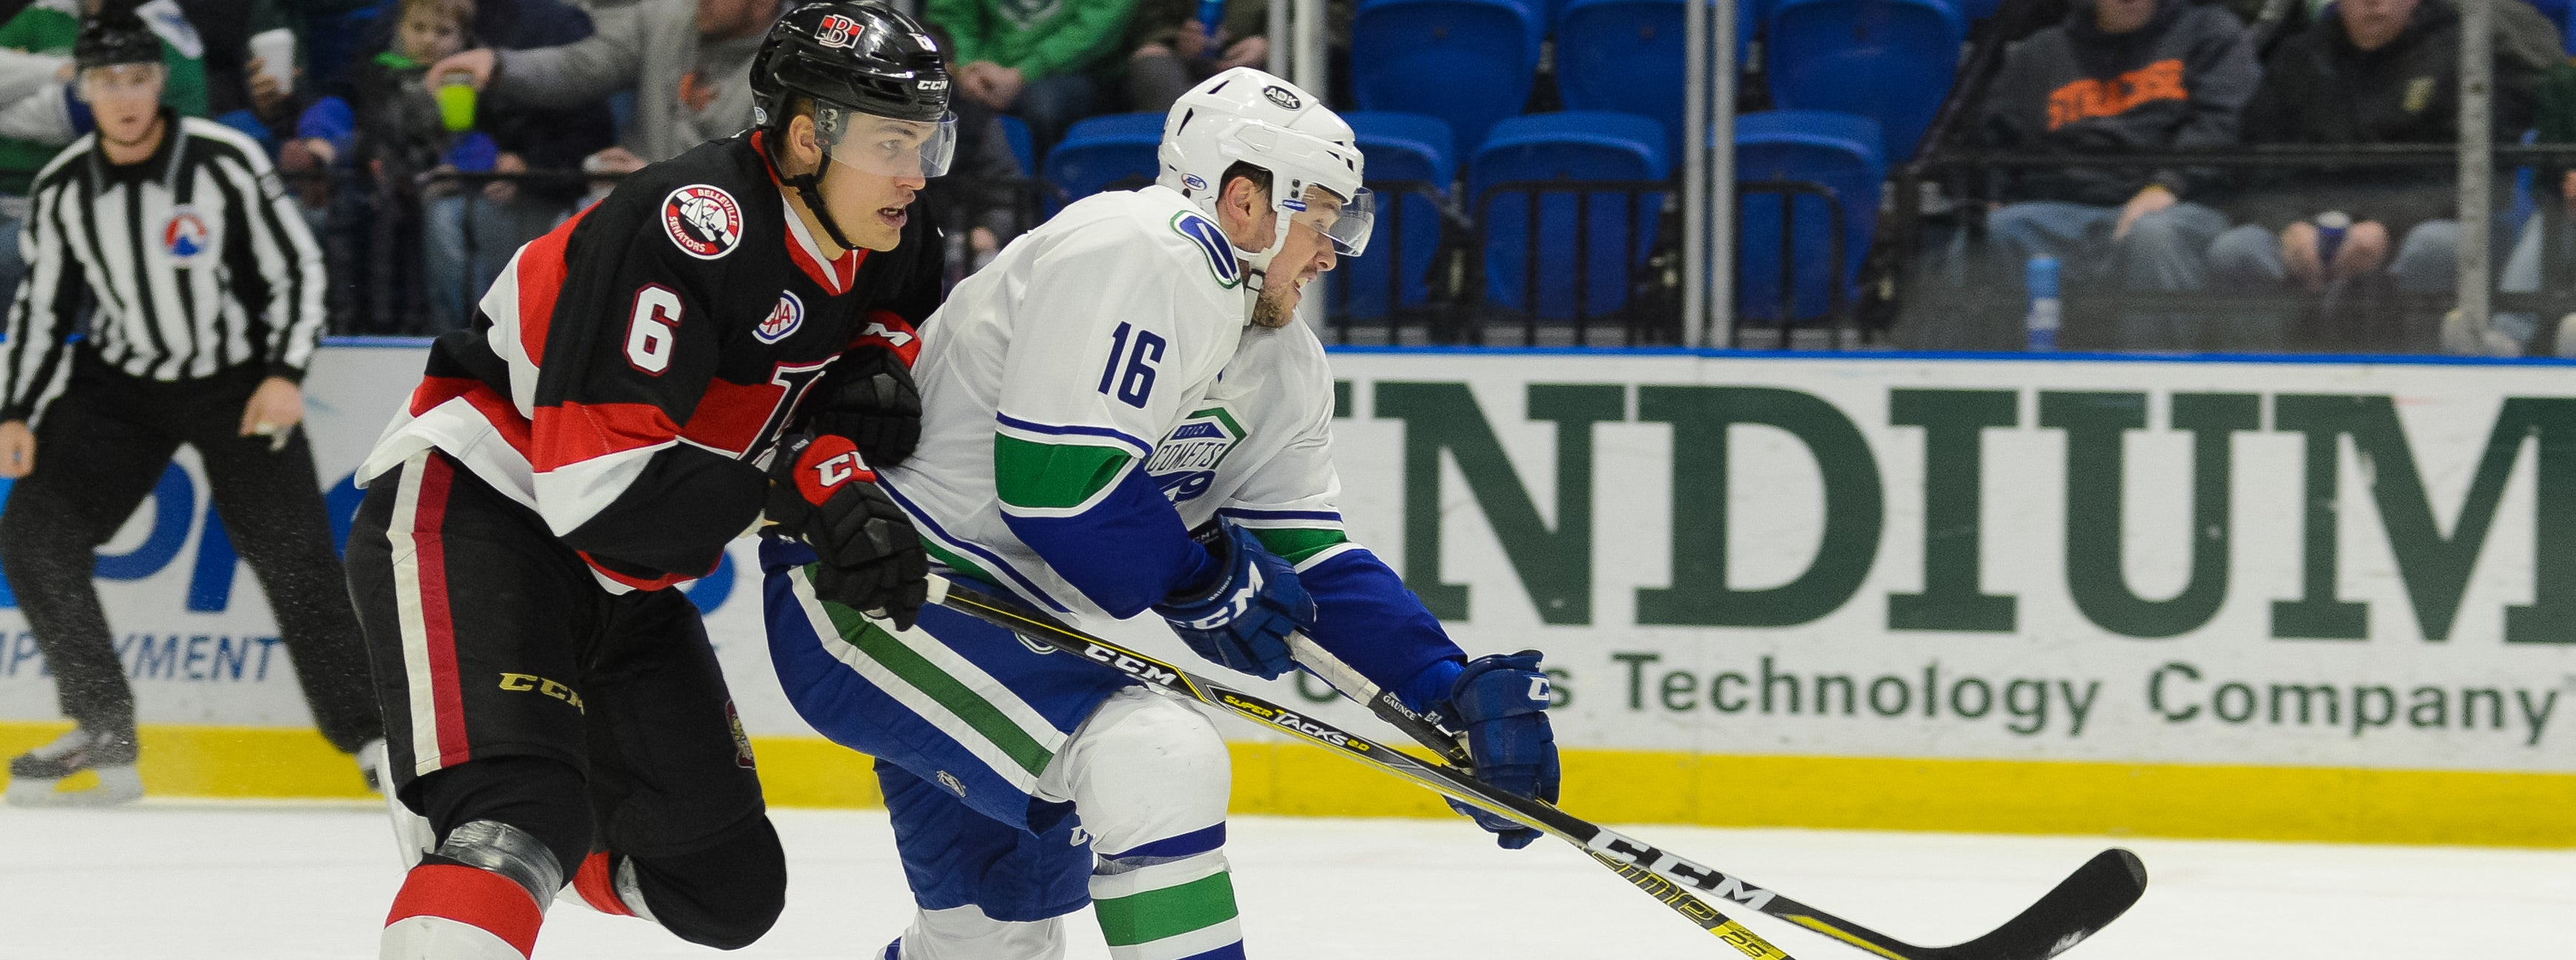 COMETS ROAD TRIP CONTINUES IN BELLEVILLE